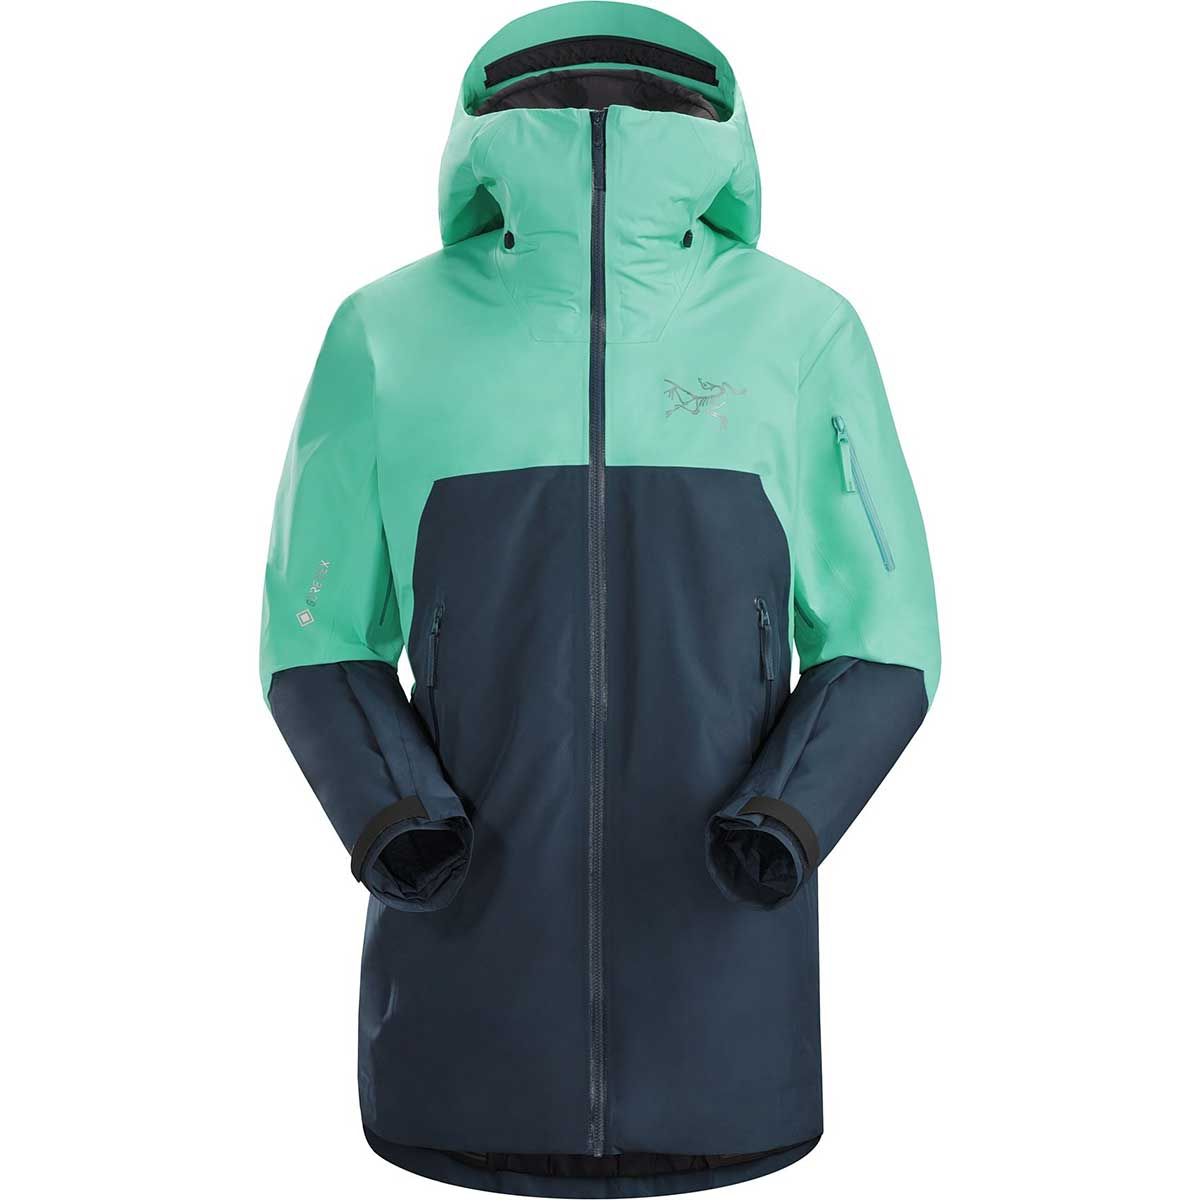 Arc'teryx Women's Shashka IS Jacket in Illucination